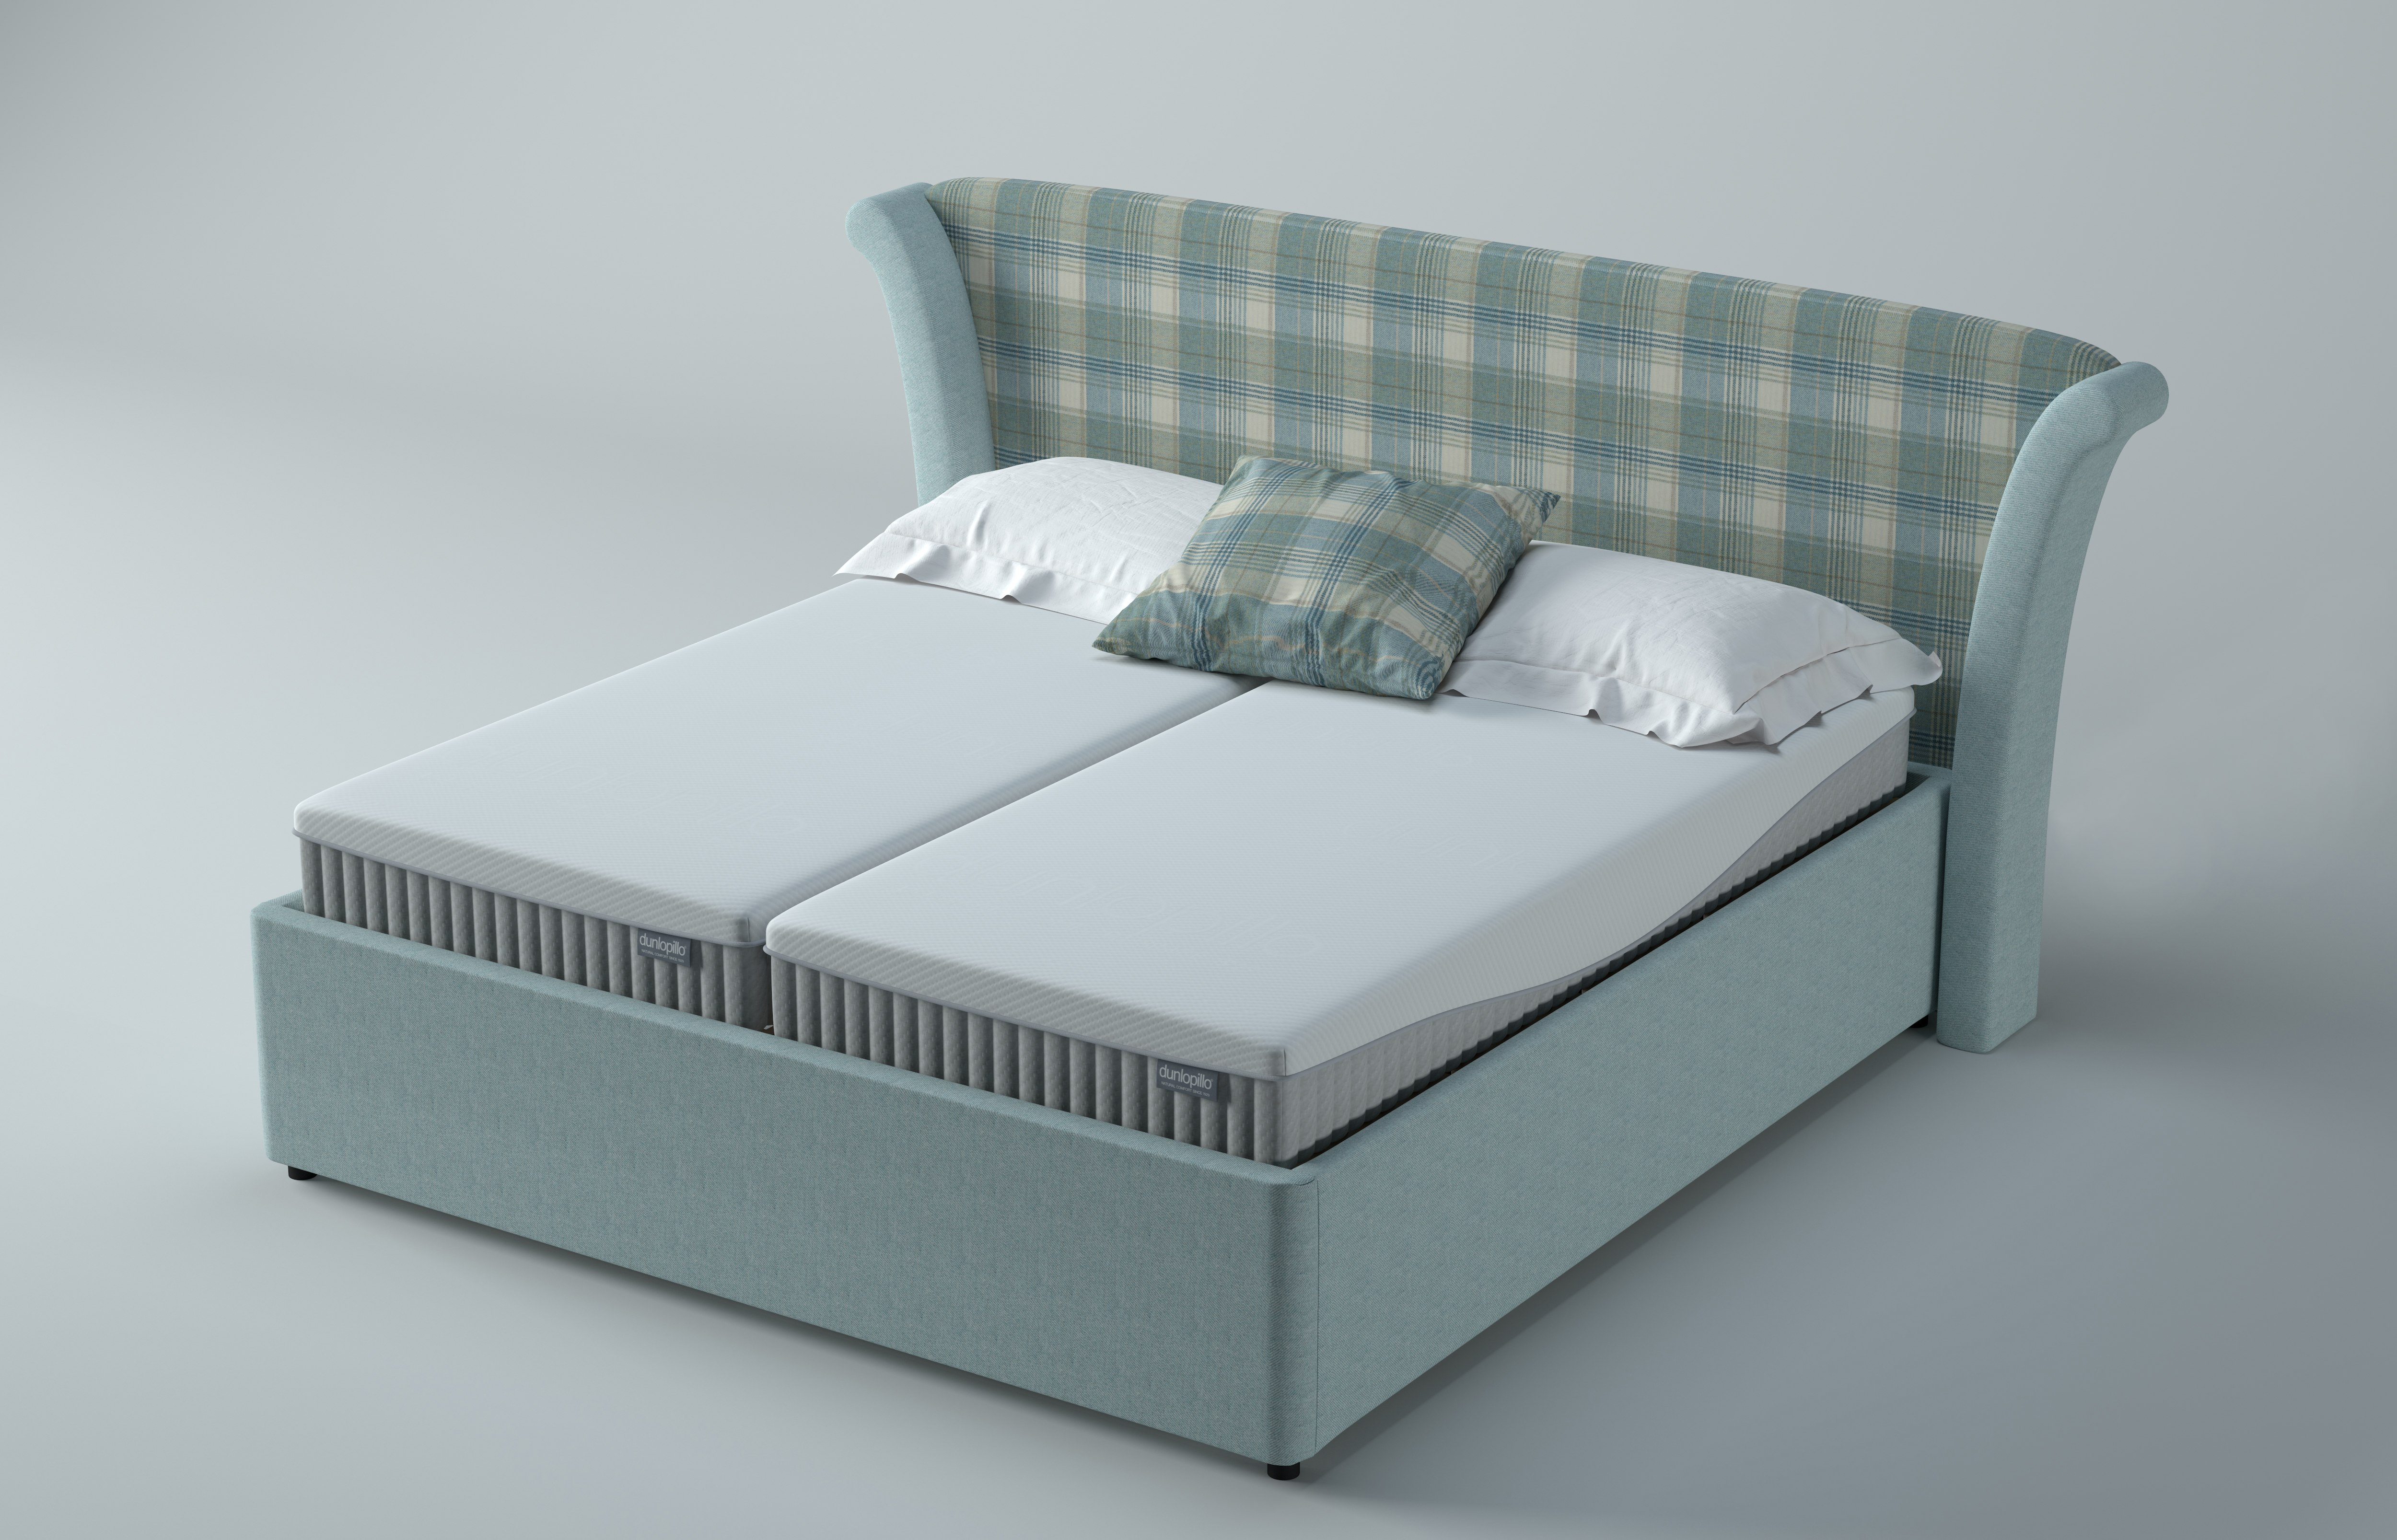 Image Result For Electric Beds King Size